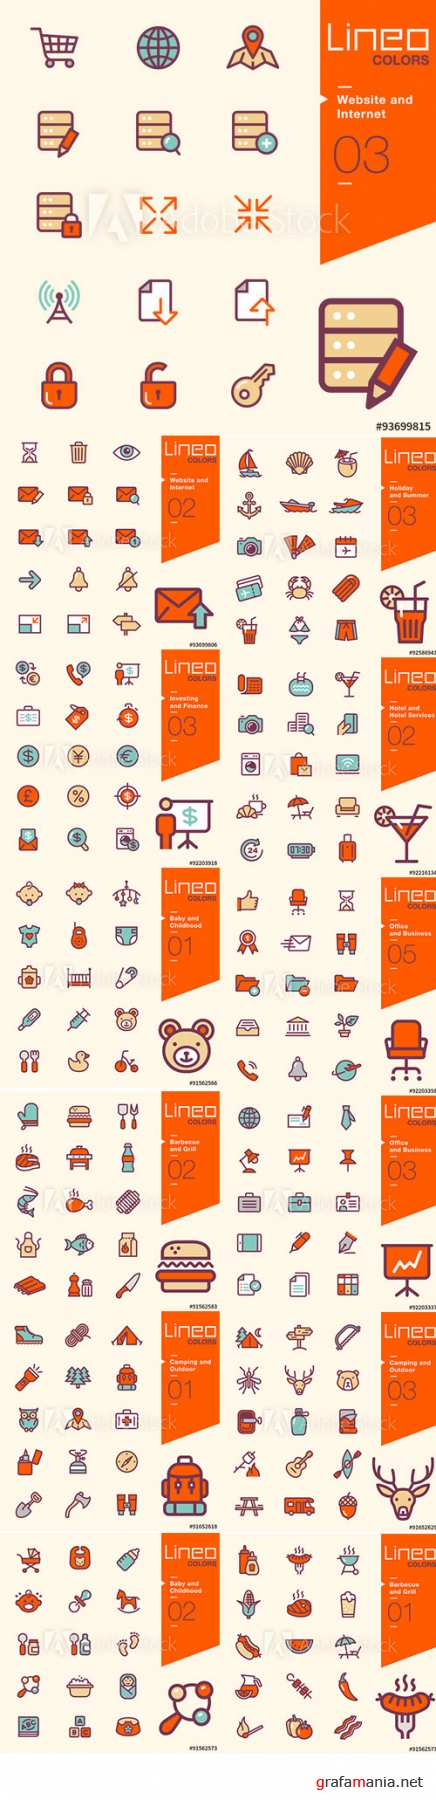 Lineo Colors Icons Pack Vol 5